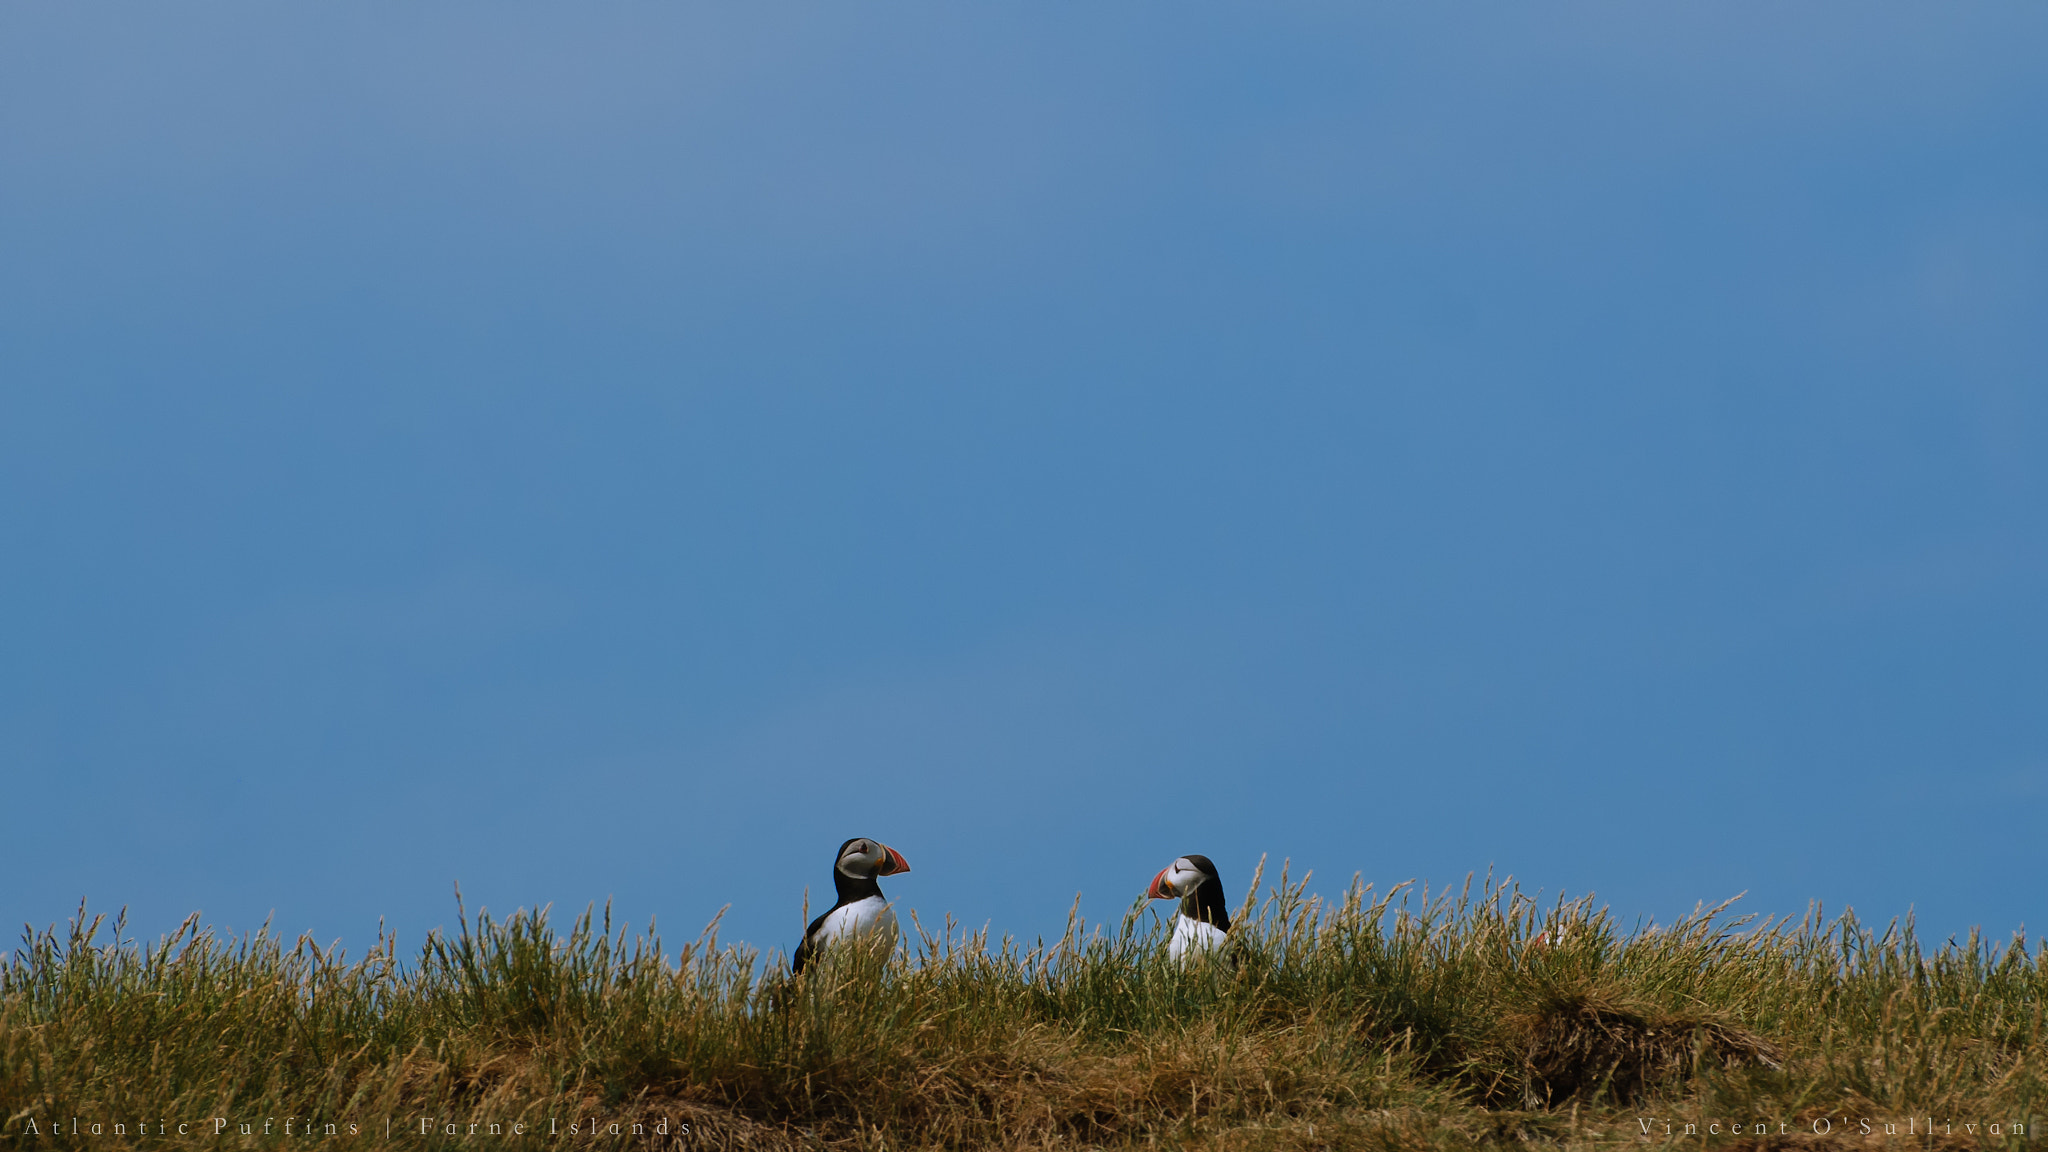 Photograph Atlantic Puffins - Farne Islands by Vince O'Sullivan on 500px